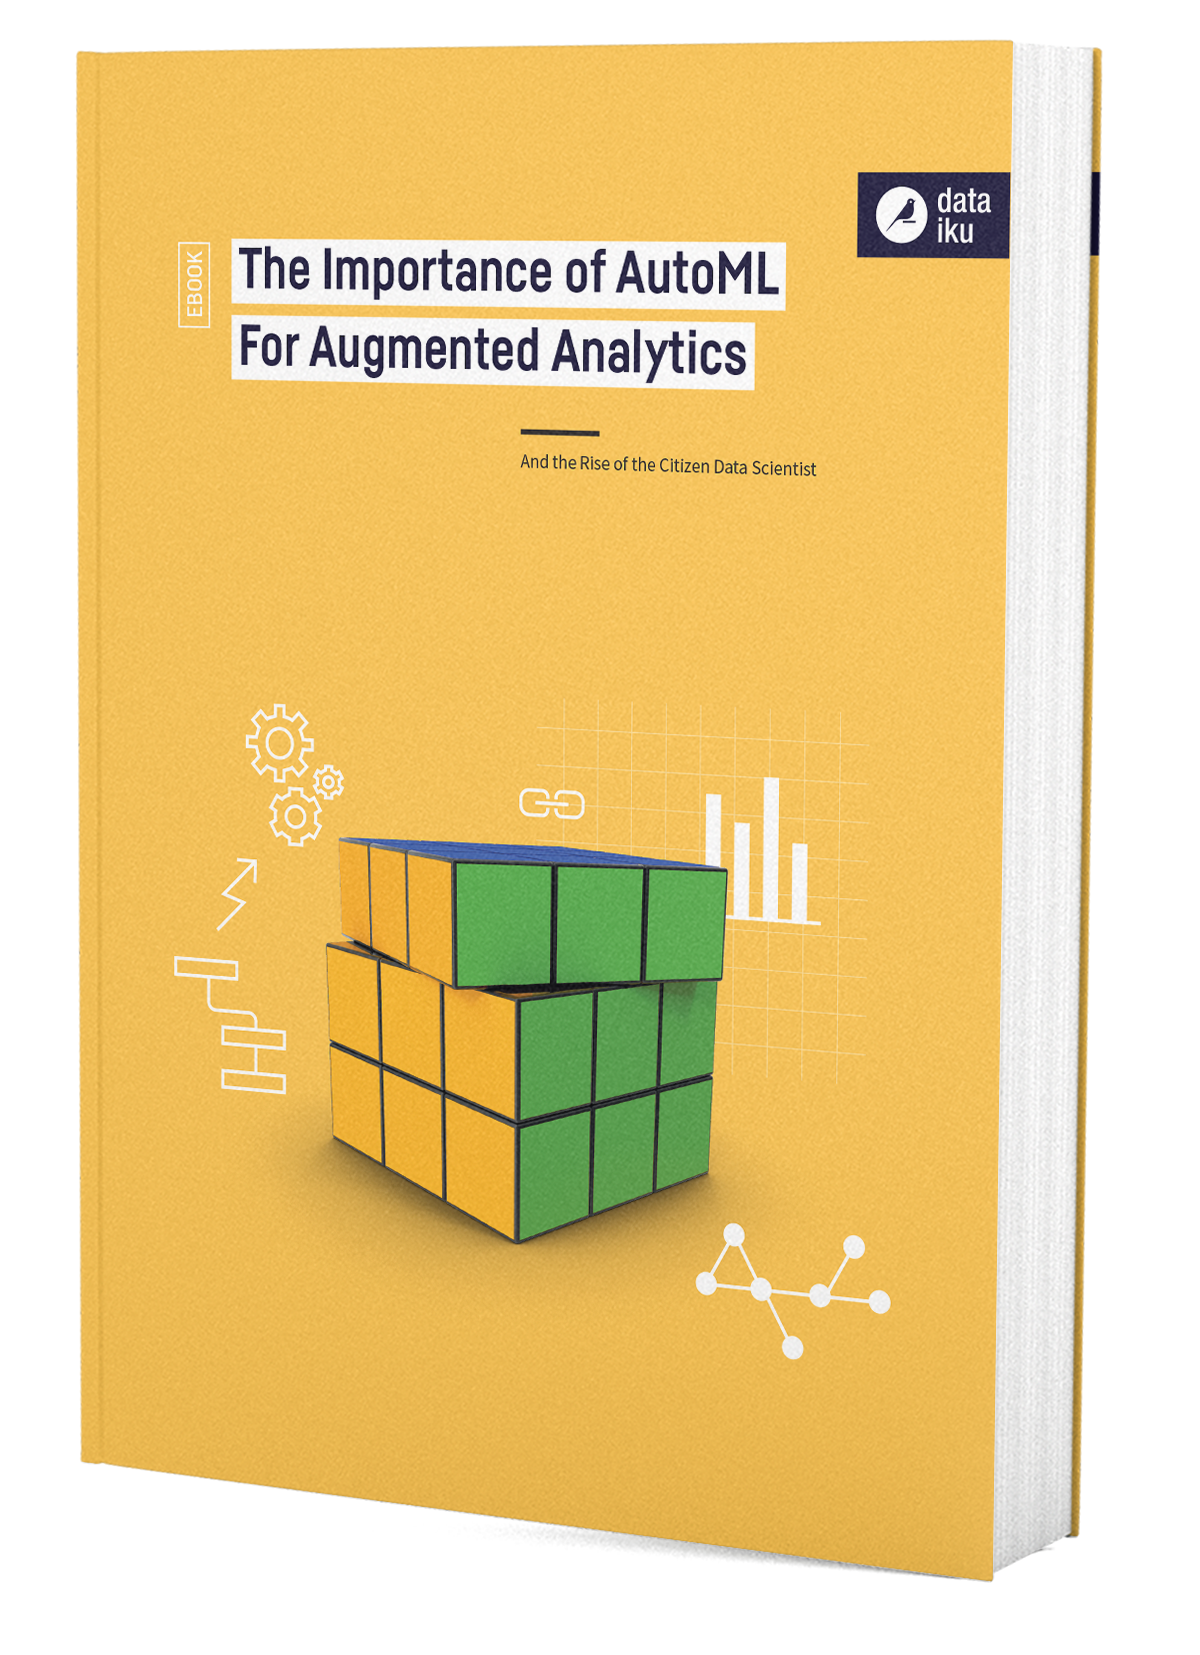 DKU-DATAIKU-EBOOK_COVER-WEB-THE_IMPORTANCE_OF_AUTOML_FOR_AUGMENTED_ANALYTICS-BAT_210512